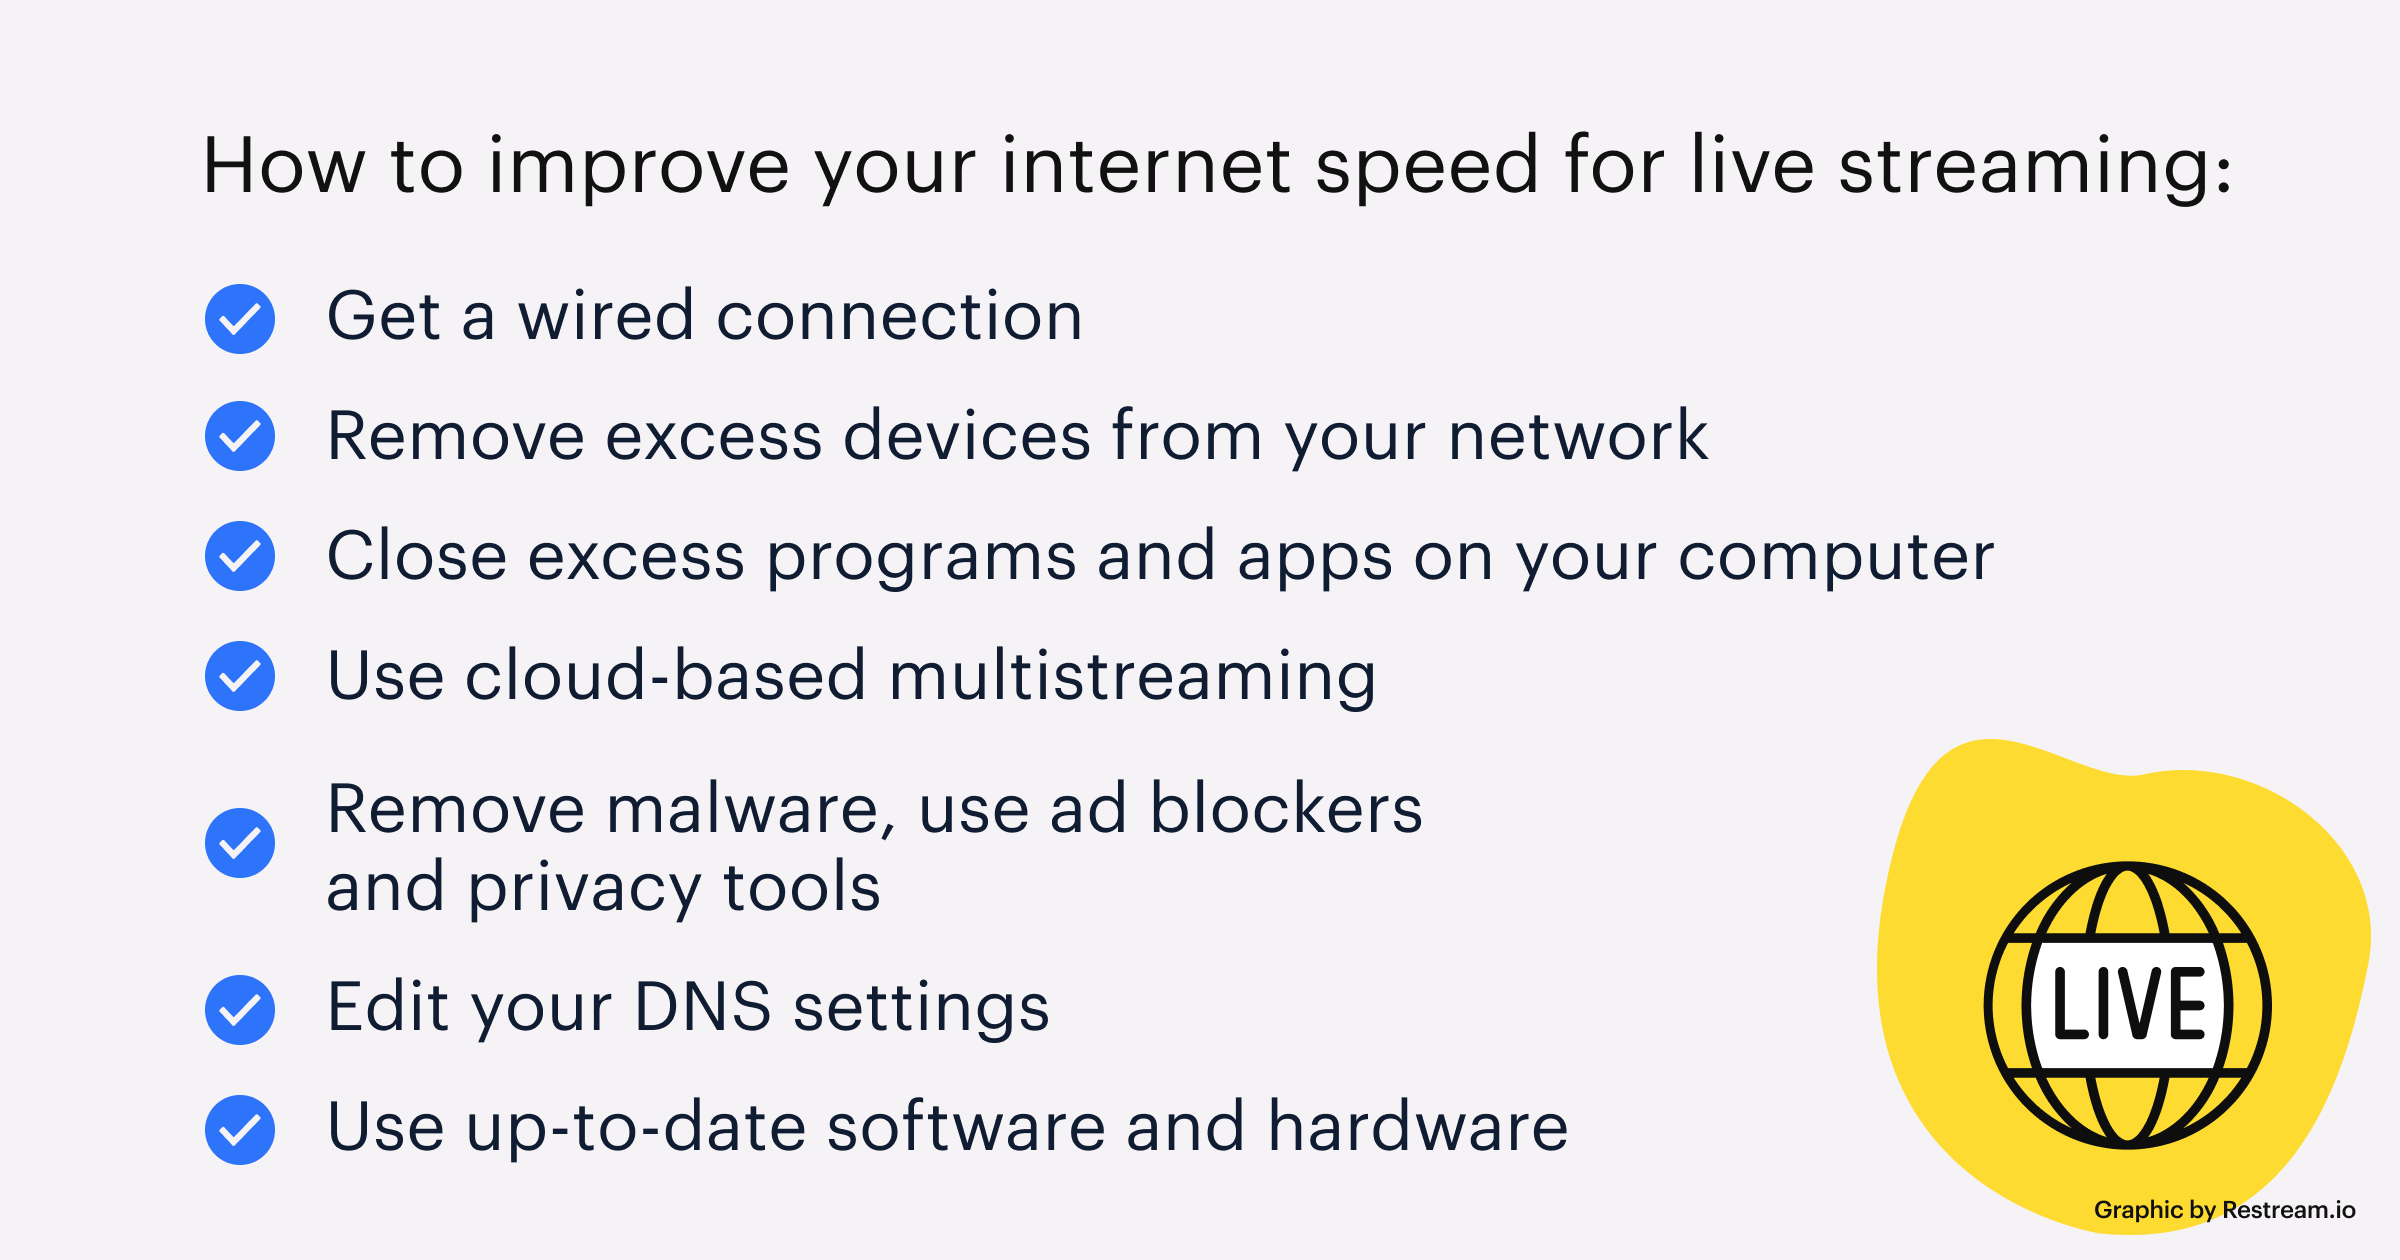 Checklist on how to improve your internet speed for streaming